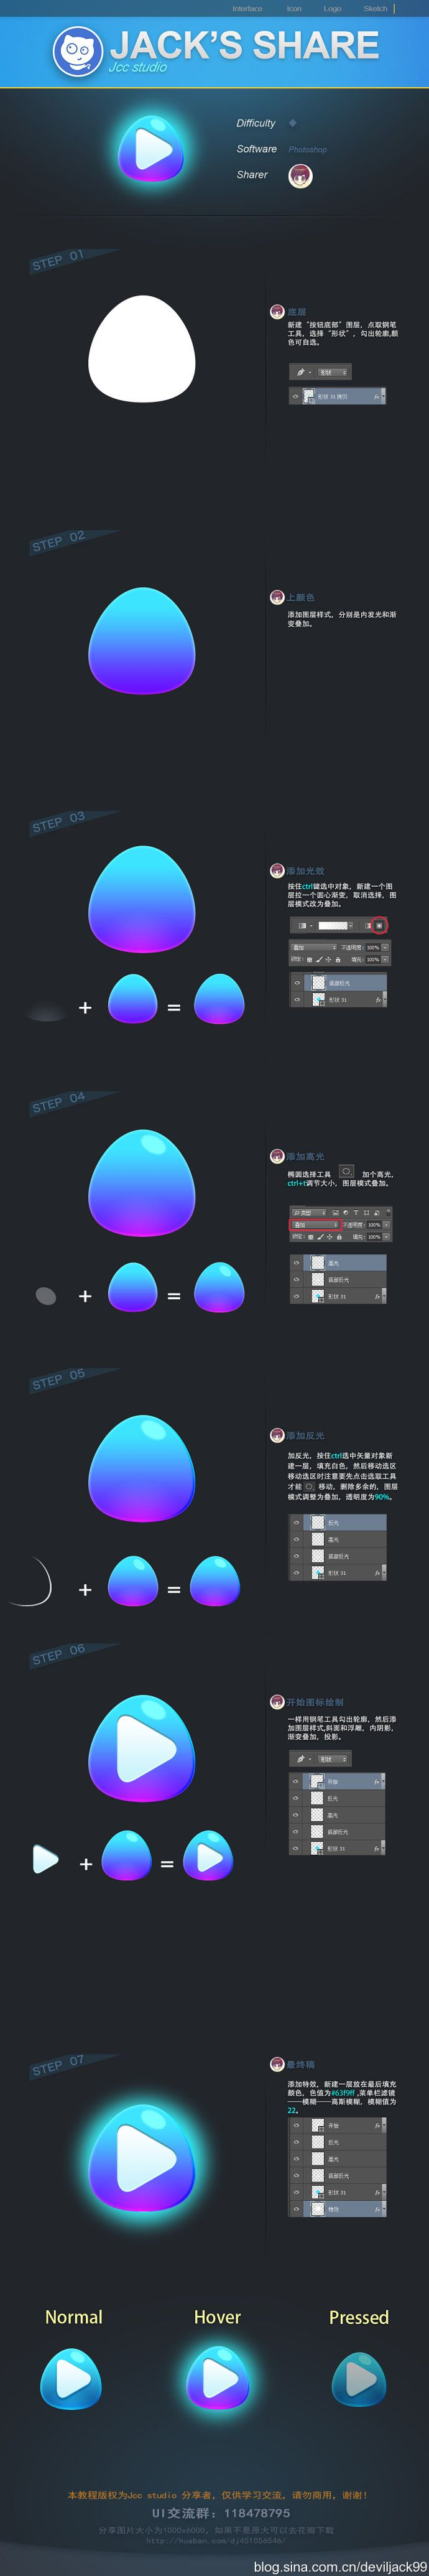 Jcc studio公益教程-上半年篇(game UI/Interface/icon/logo/GUI/art/图标/界面/教程/素材/资源)